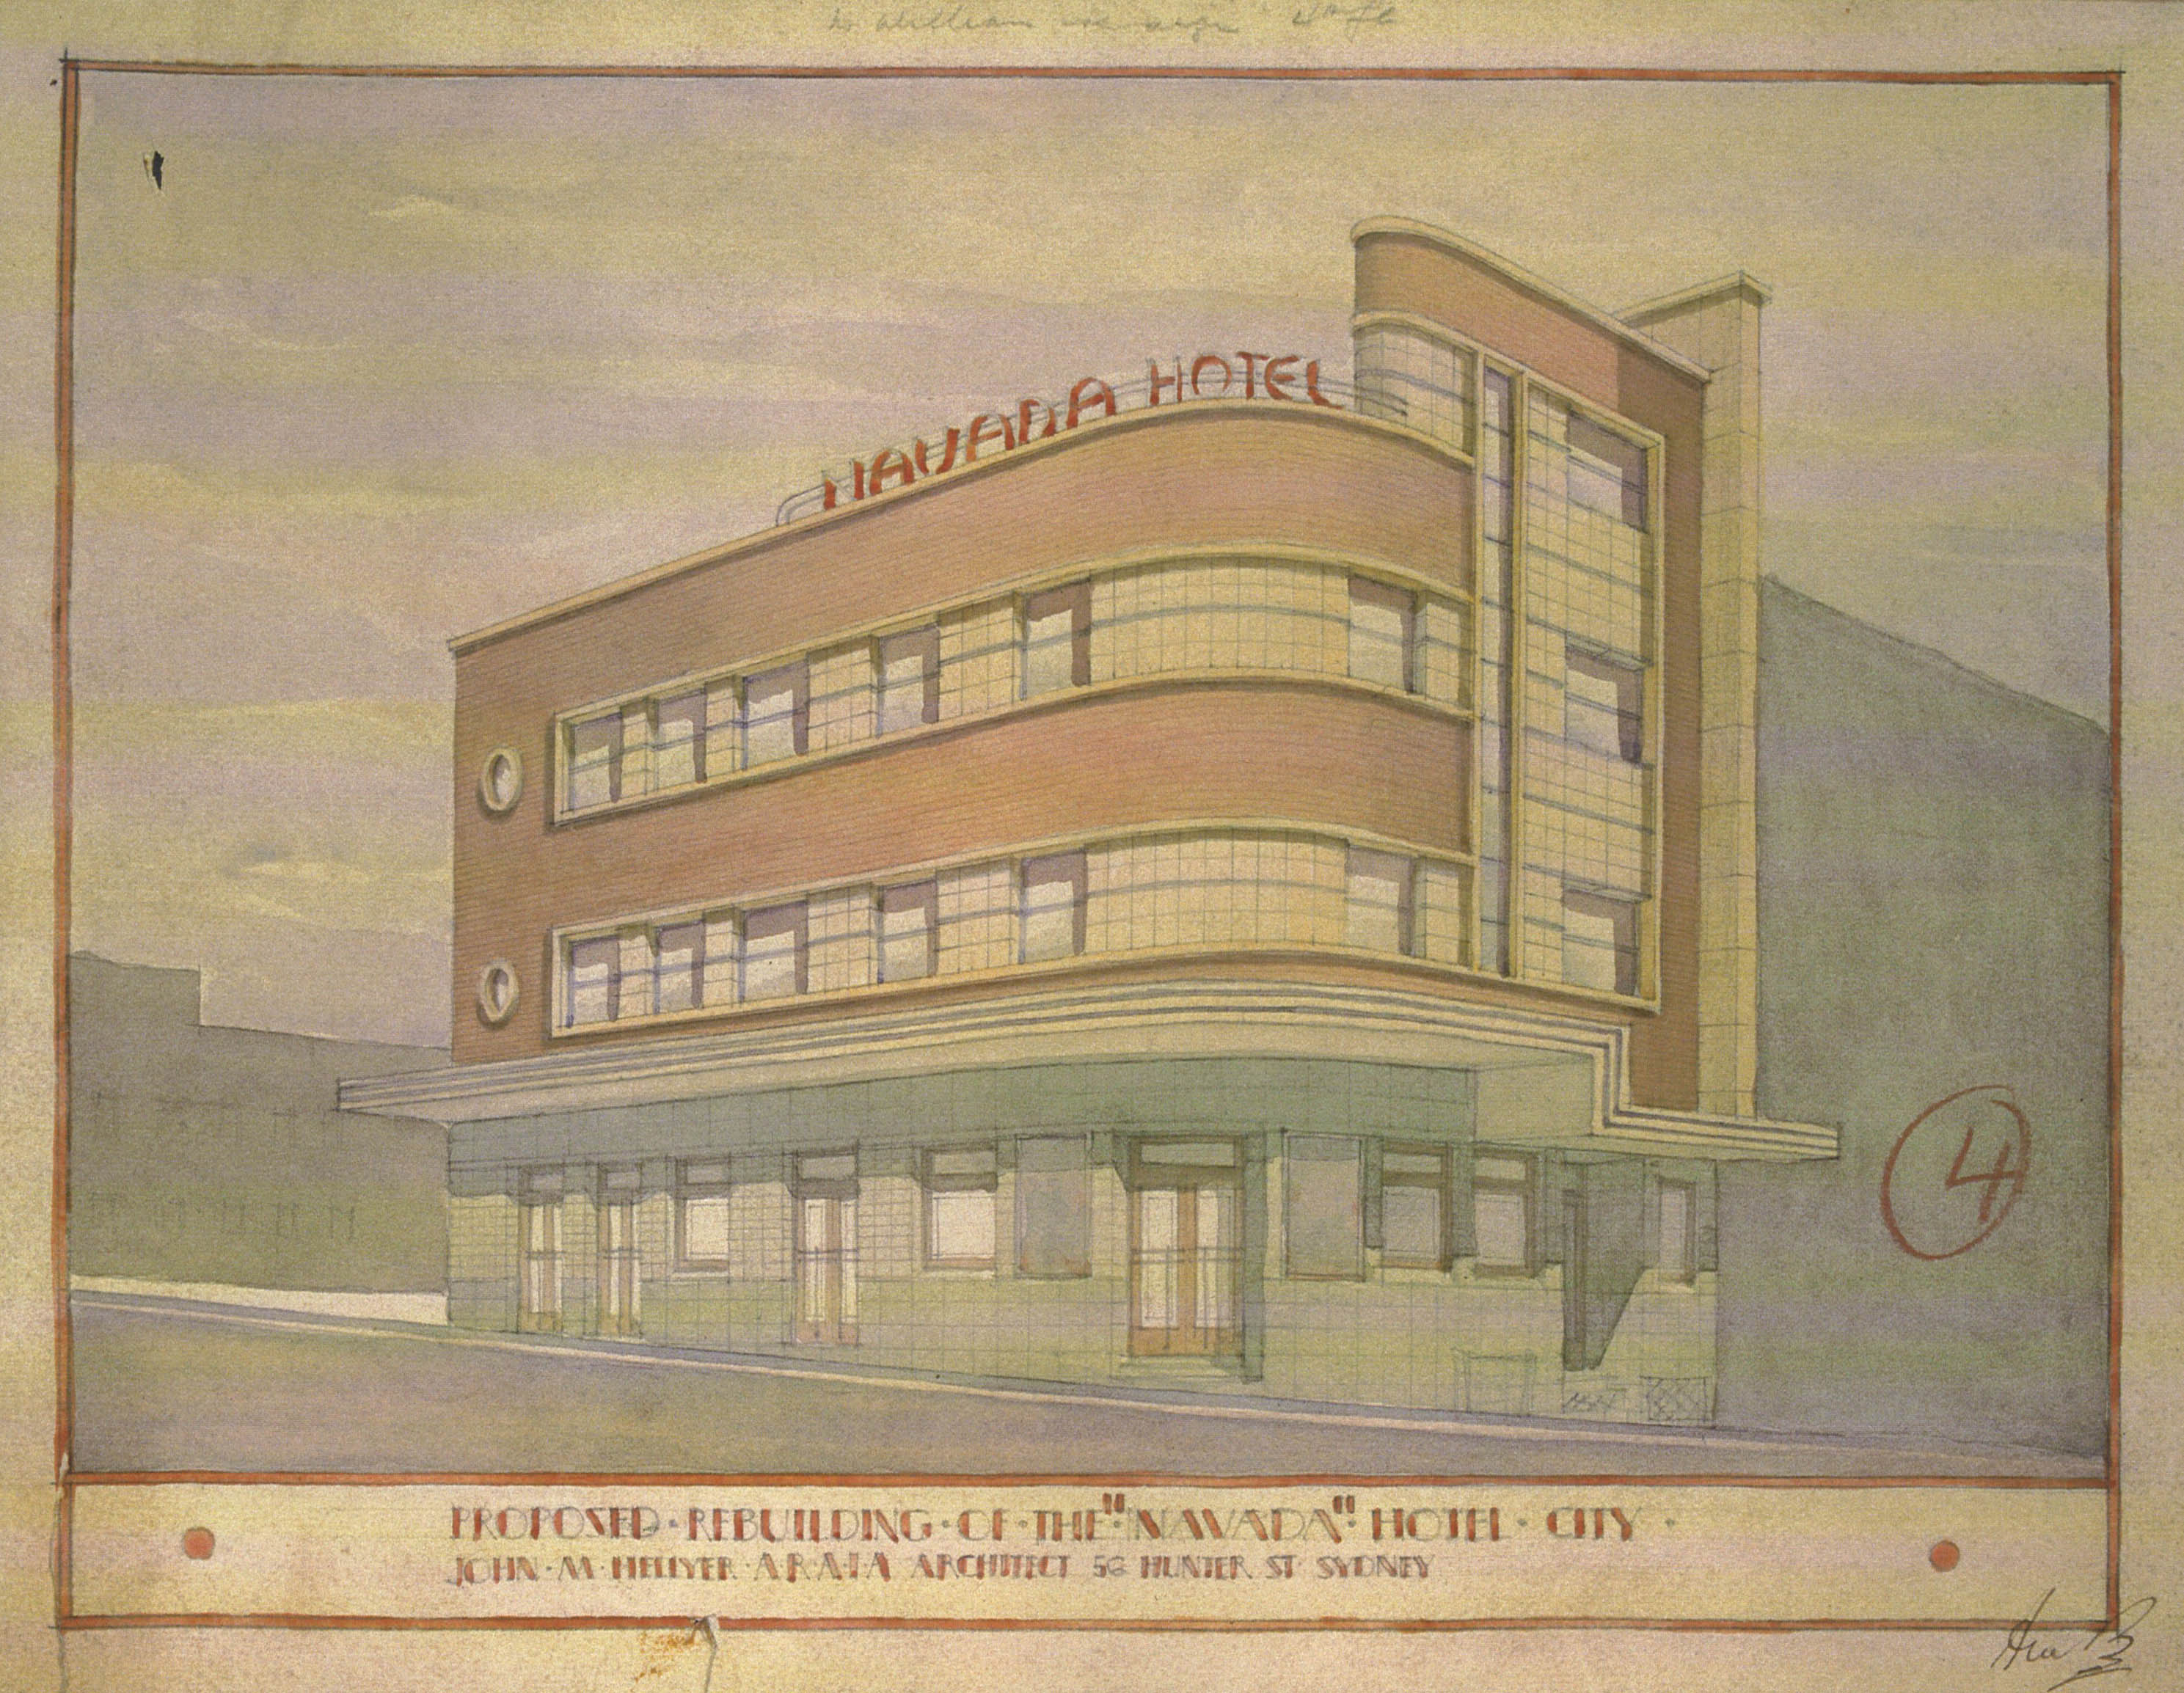 Sydney s pubs liquor larrikins the law sydney living for Full size architectural drawings